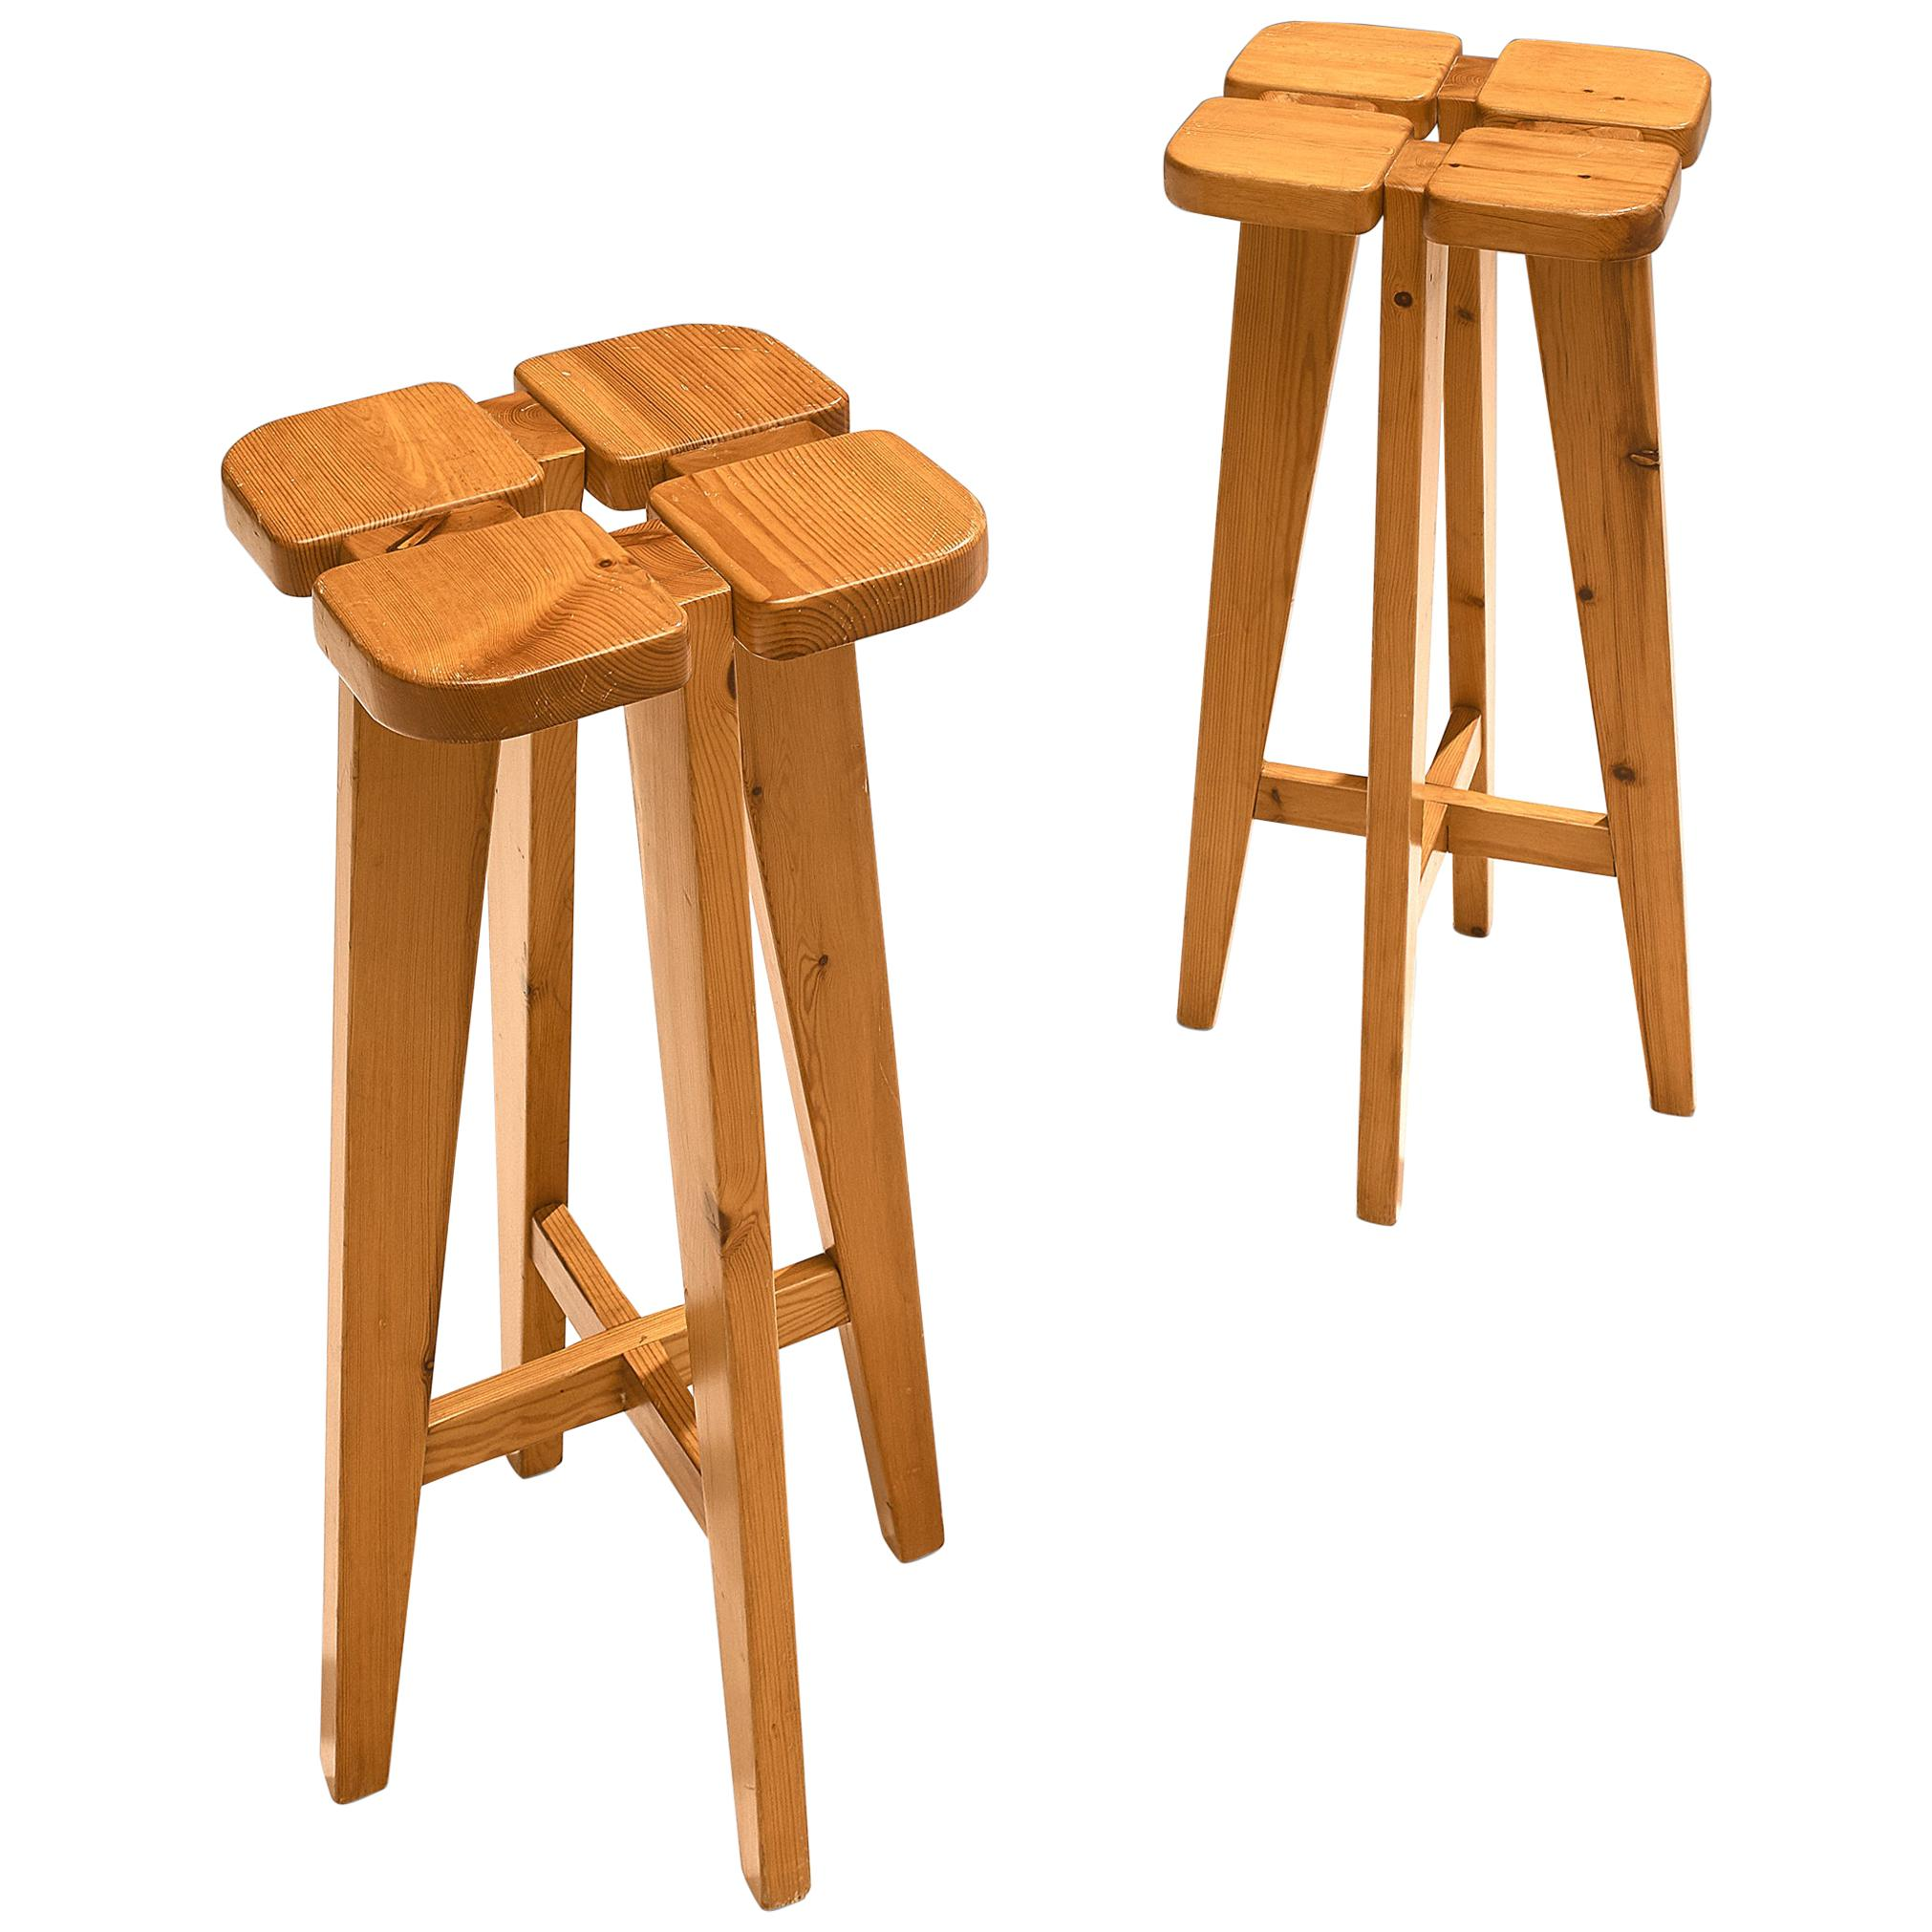 Pair of Barstools in Solid Pine by Lisa Johansson Pape